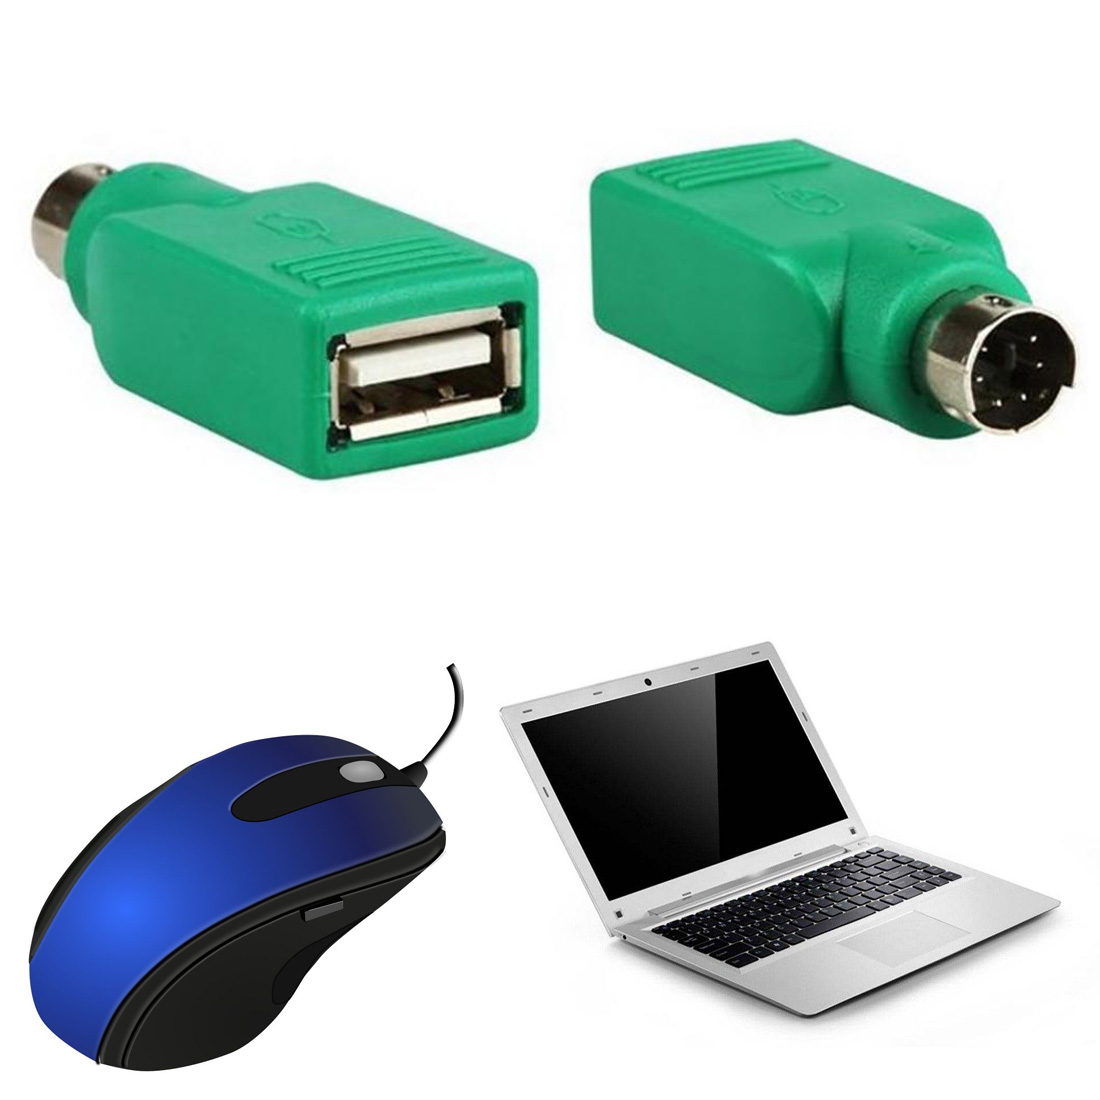 Computer Cables Connector USB Male PS/2 to USB adapter round port to U port converter USB keyboard Adapter Converter